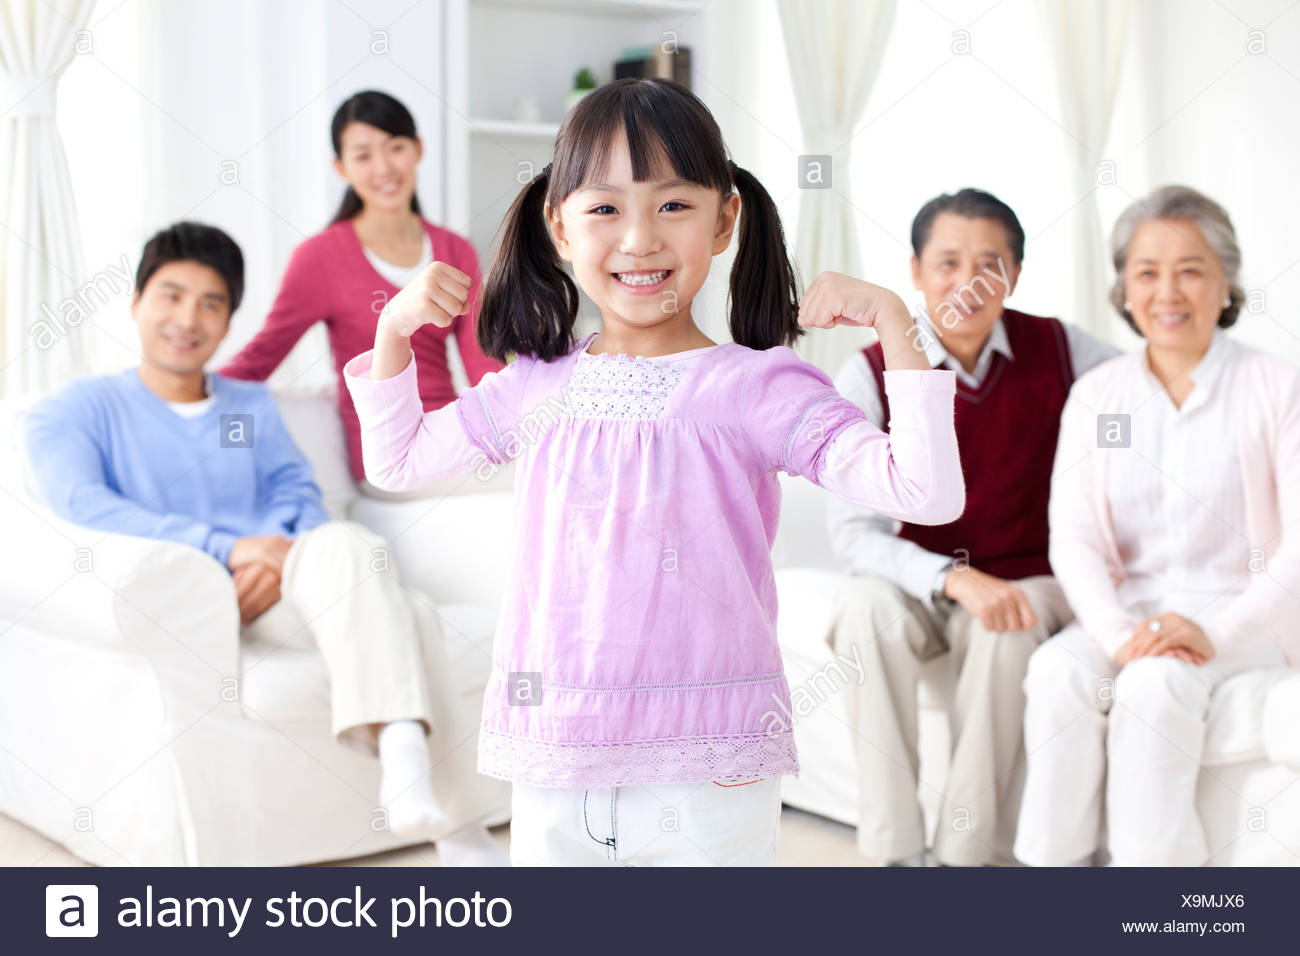 Young Chinese girl flexing myuscles, parents and grandparents behind her - Stock Image